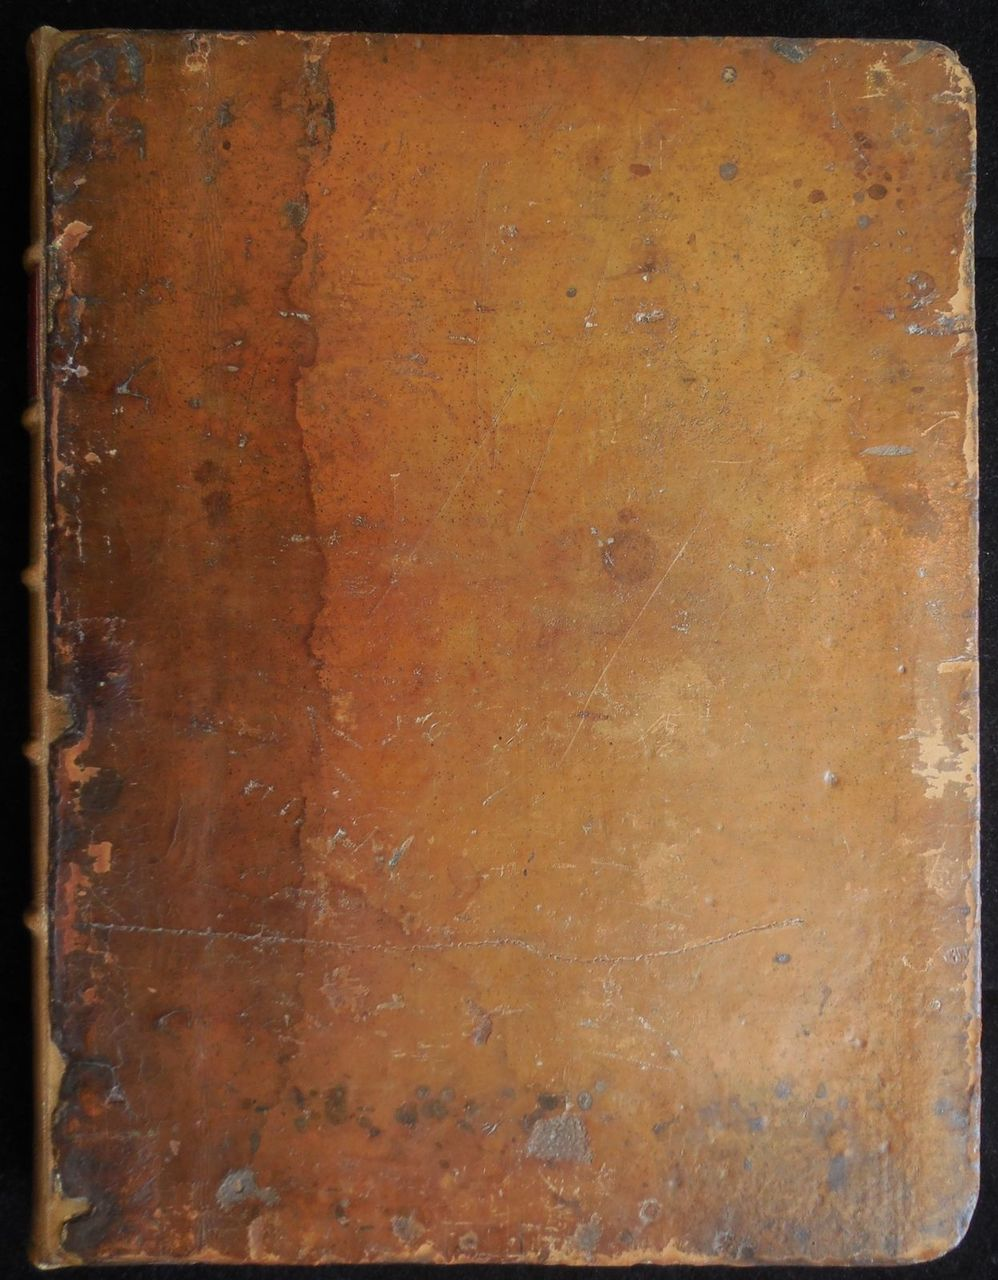 A TREATISE ON PRACTICAL ASTRONOMY, by S. Vince - 1790 Cambridge University